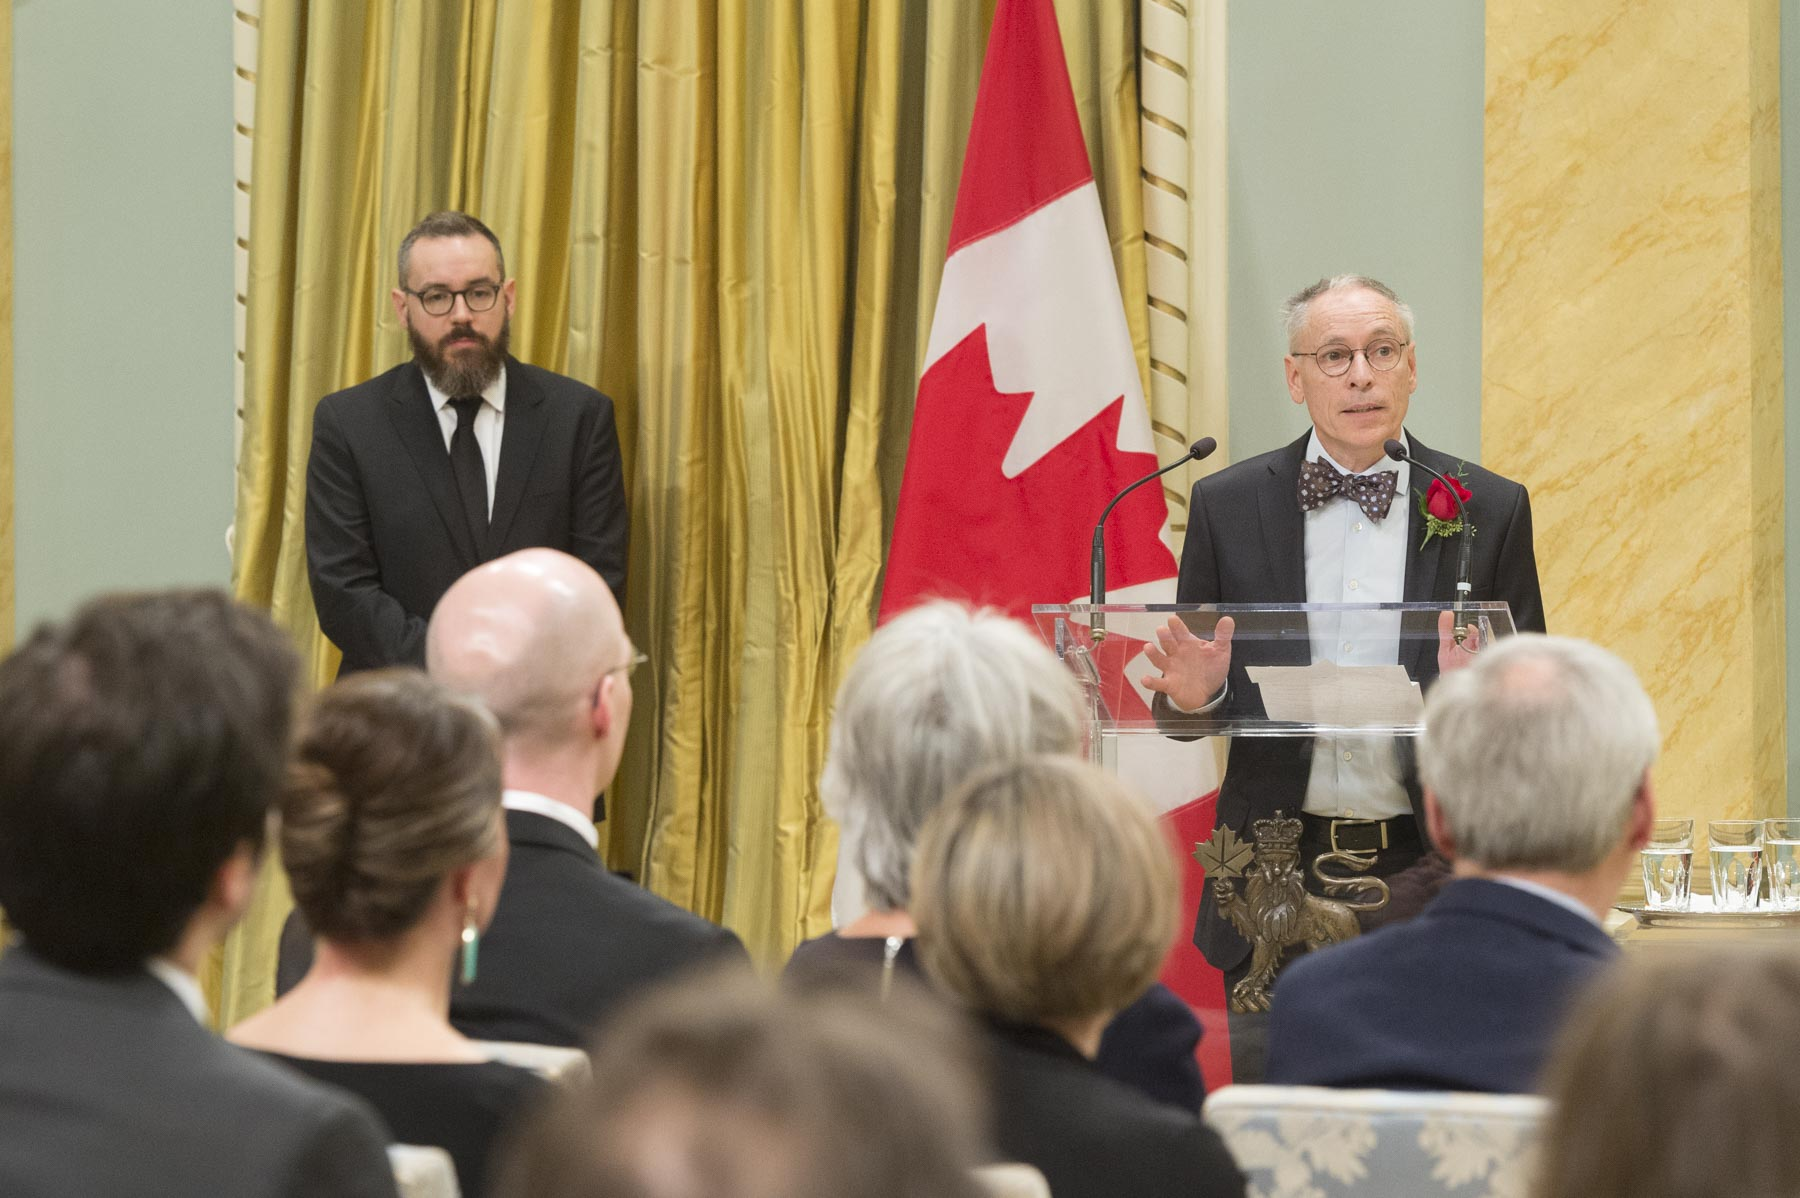 Jacques Goldstyn won his first Governor General's Literary Award for his book Azadah, which achieves the difficult goal of discussing a serious subject with a touch of poetry.